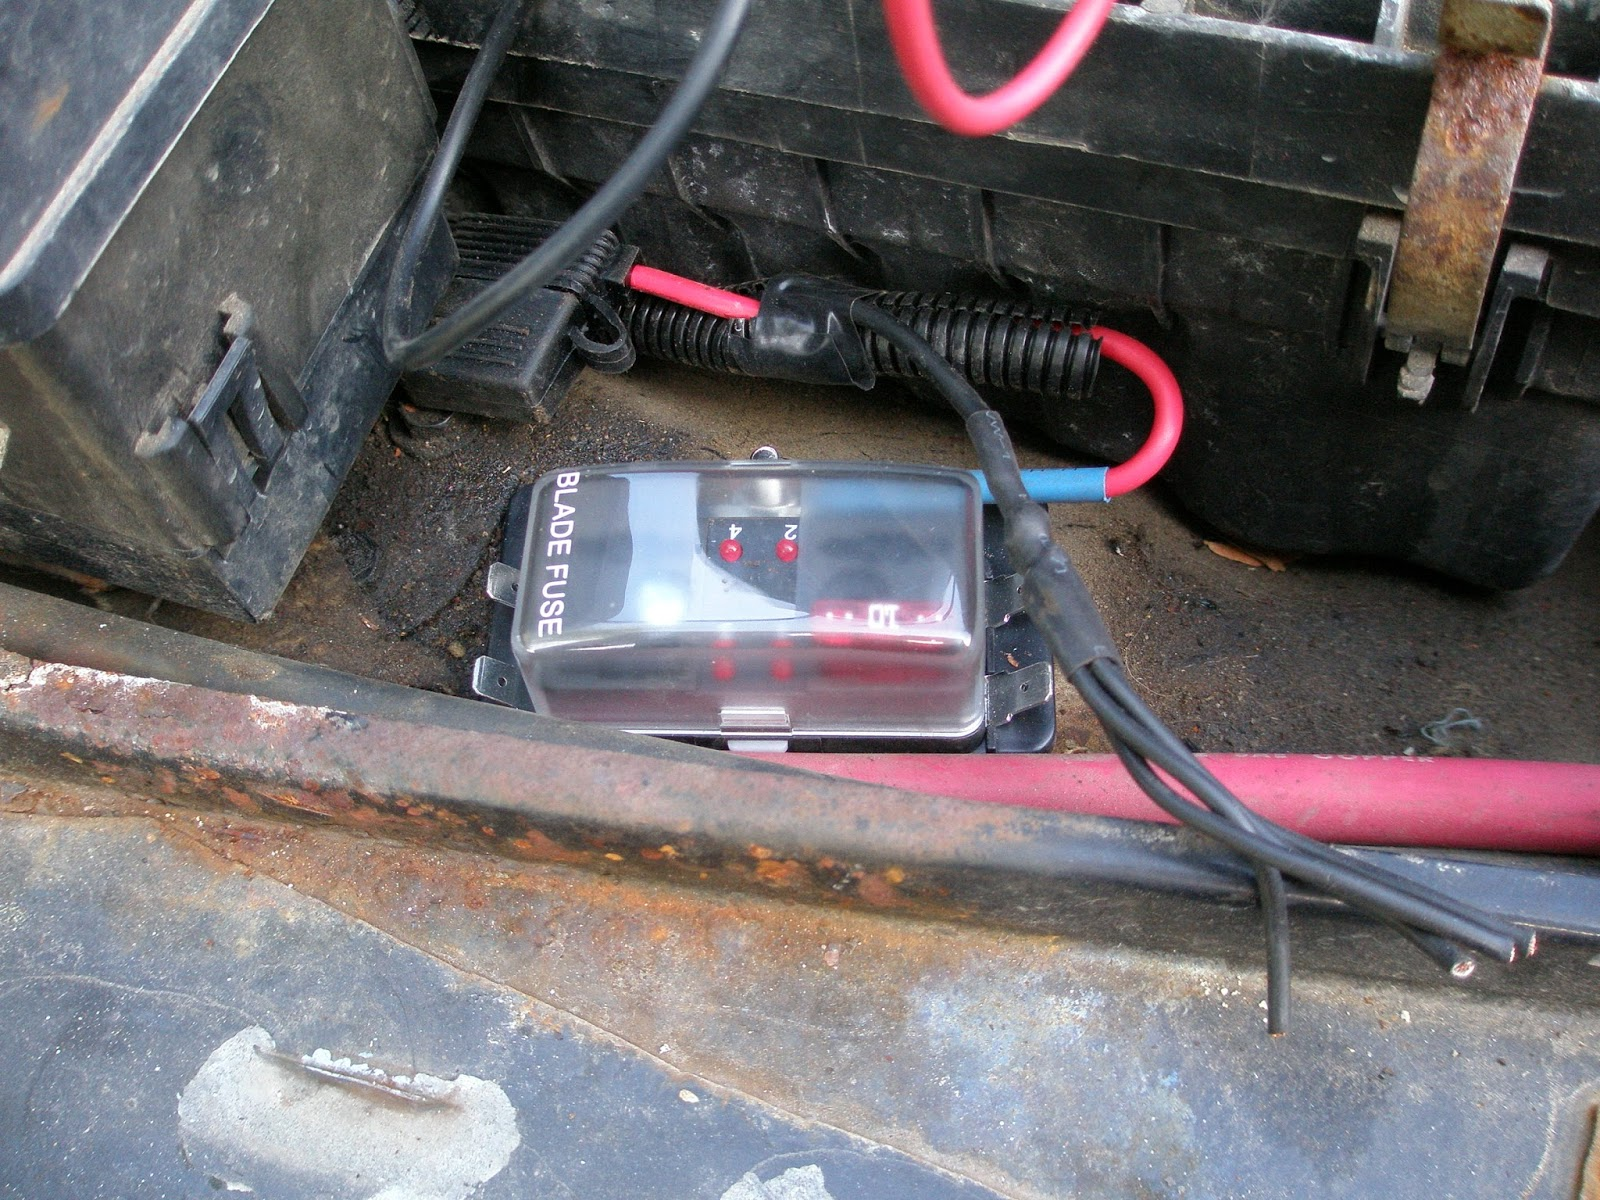 The Jeep Garage Adding Some Extra Light Accessory Fuse Box For To Begin I Needed Wired In A New Switch Block And Relay Lights Themselves At 18 Watt Each Total Of 36 Watts 12 Volts Thats Only